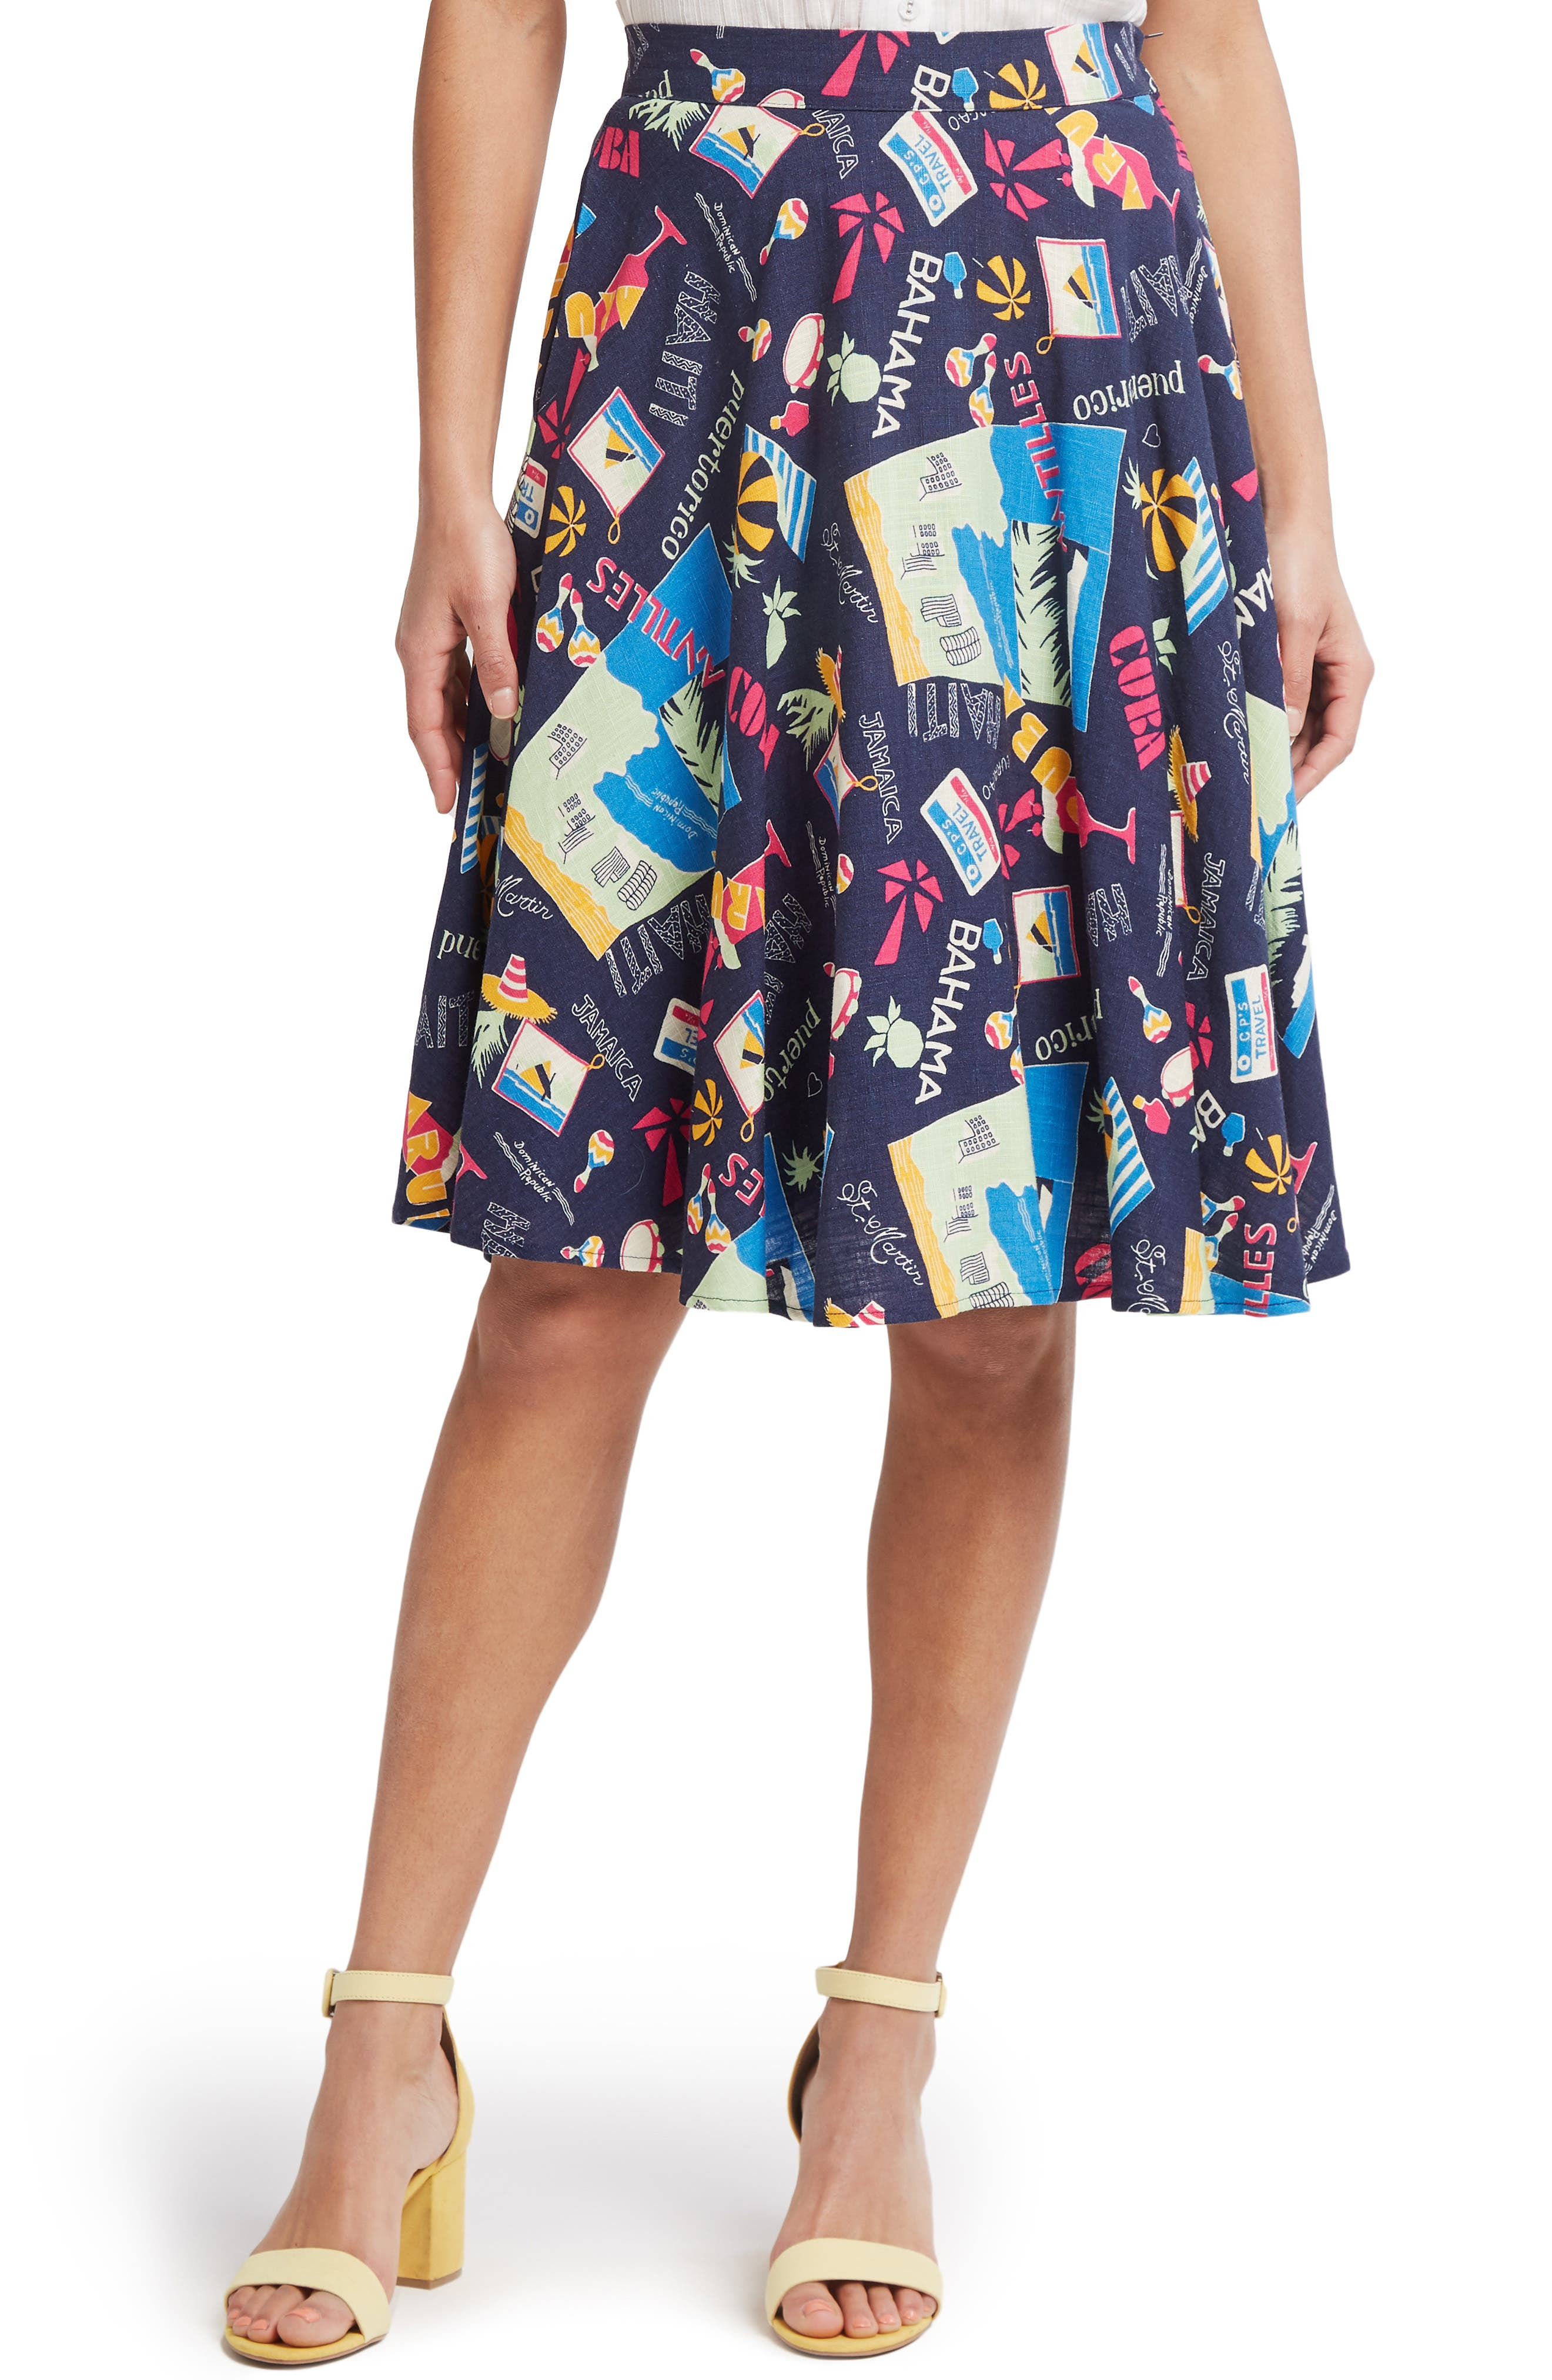 Plus Size Modcloth Just This Sway A-Line Skirt, Blue